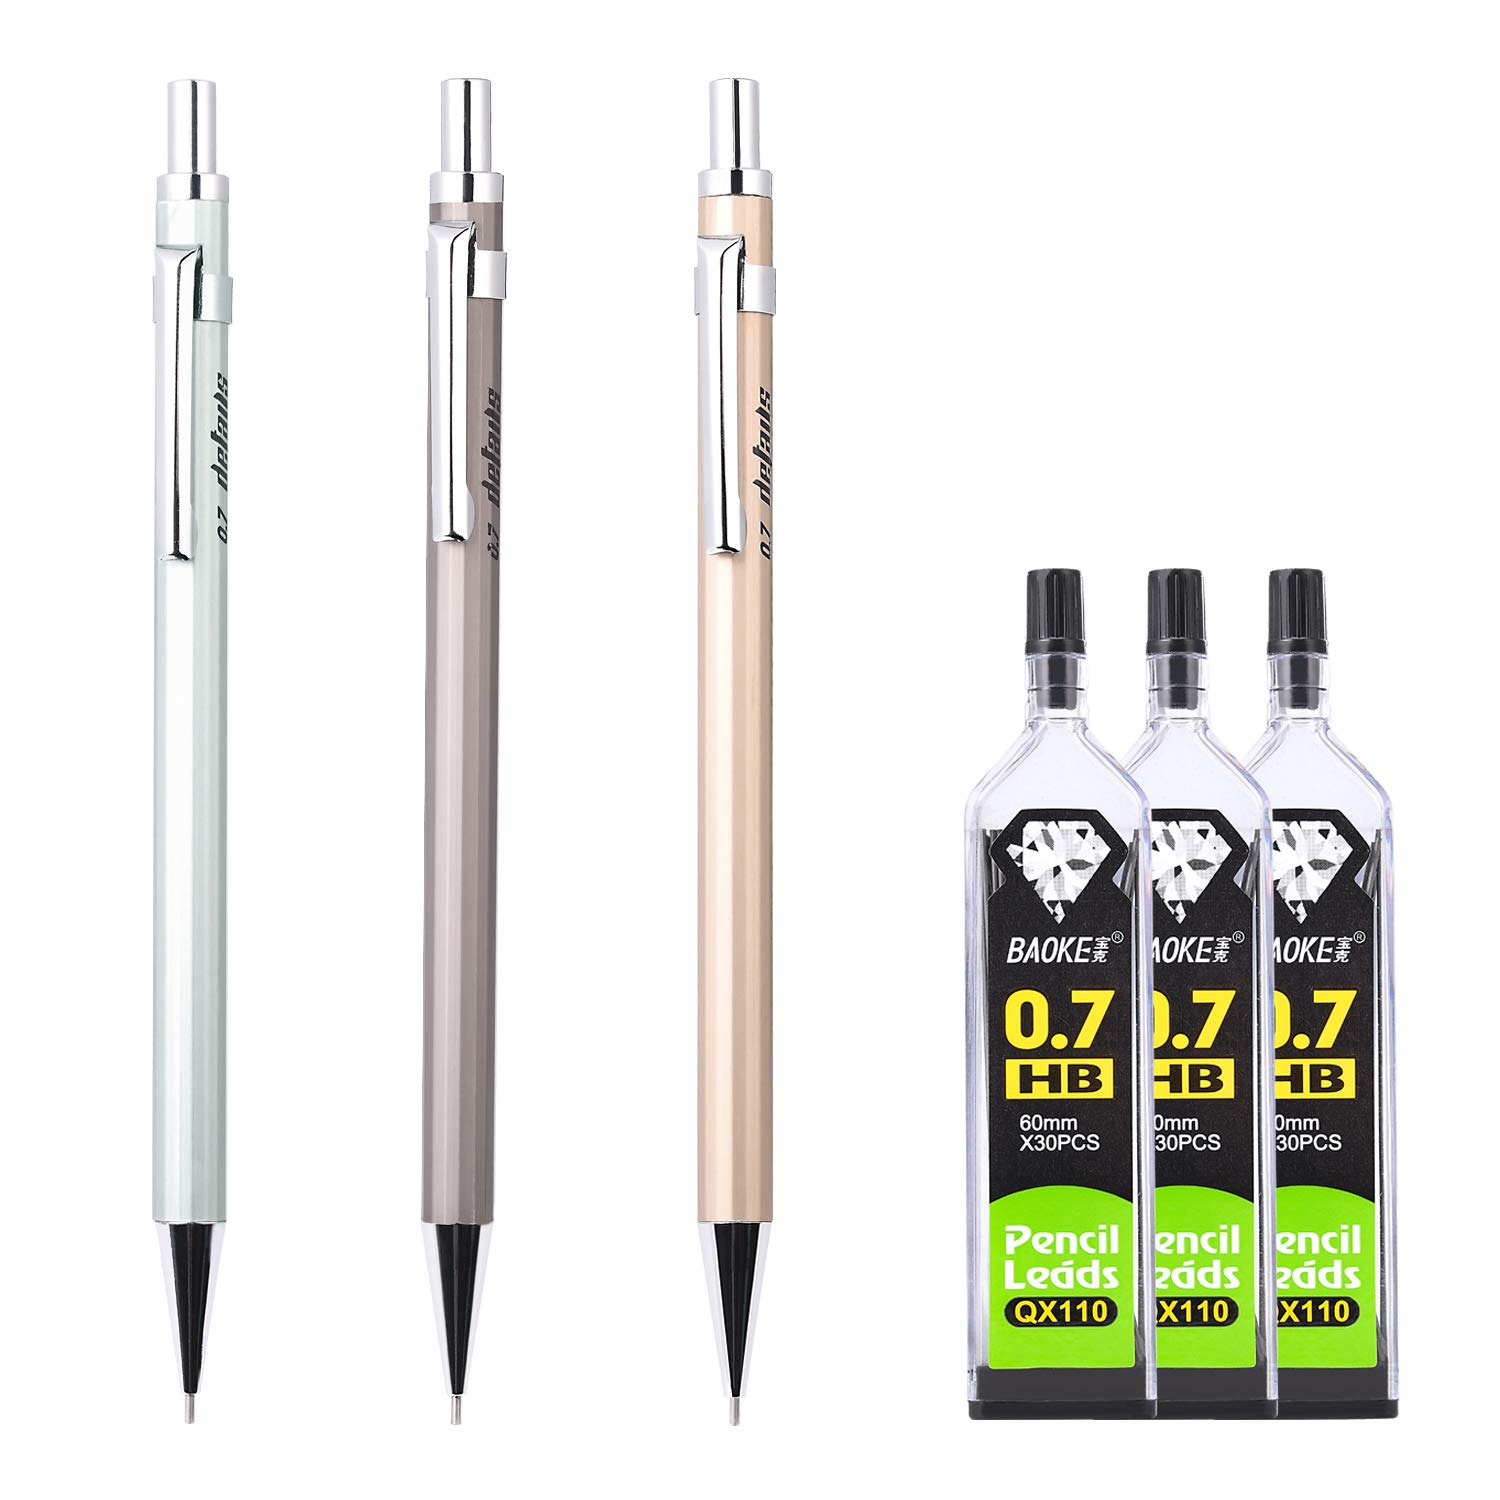 LONGKEY 3 Pack 0.7mm Mechanical Pencil with 3 Cases Lead Refills Refills for Draft Drawing, Writing, Crafting, Art Sketching Office and School